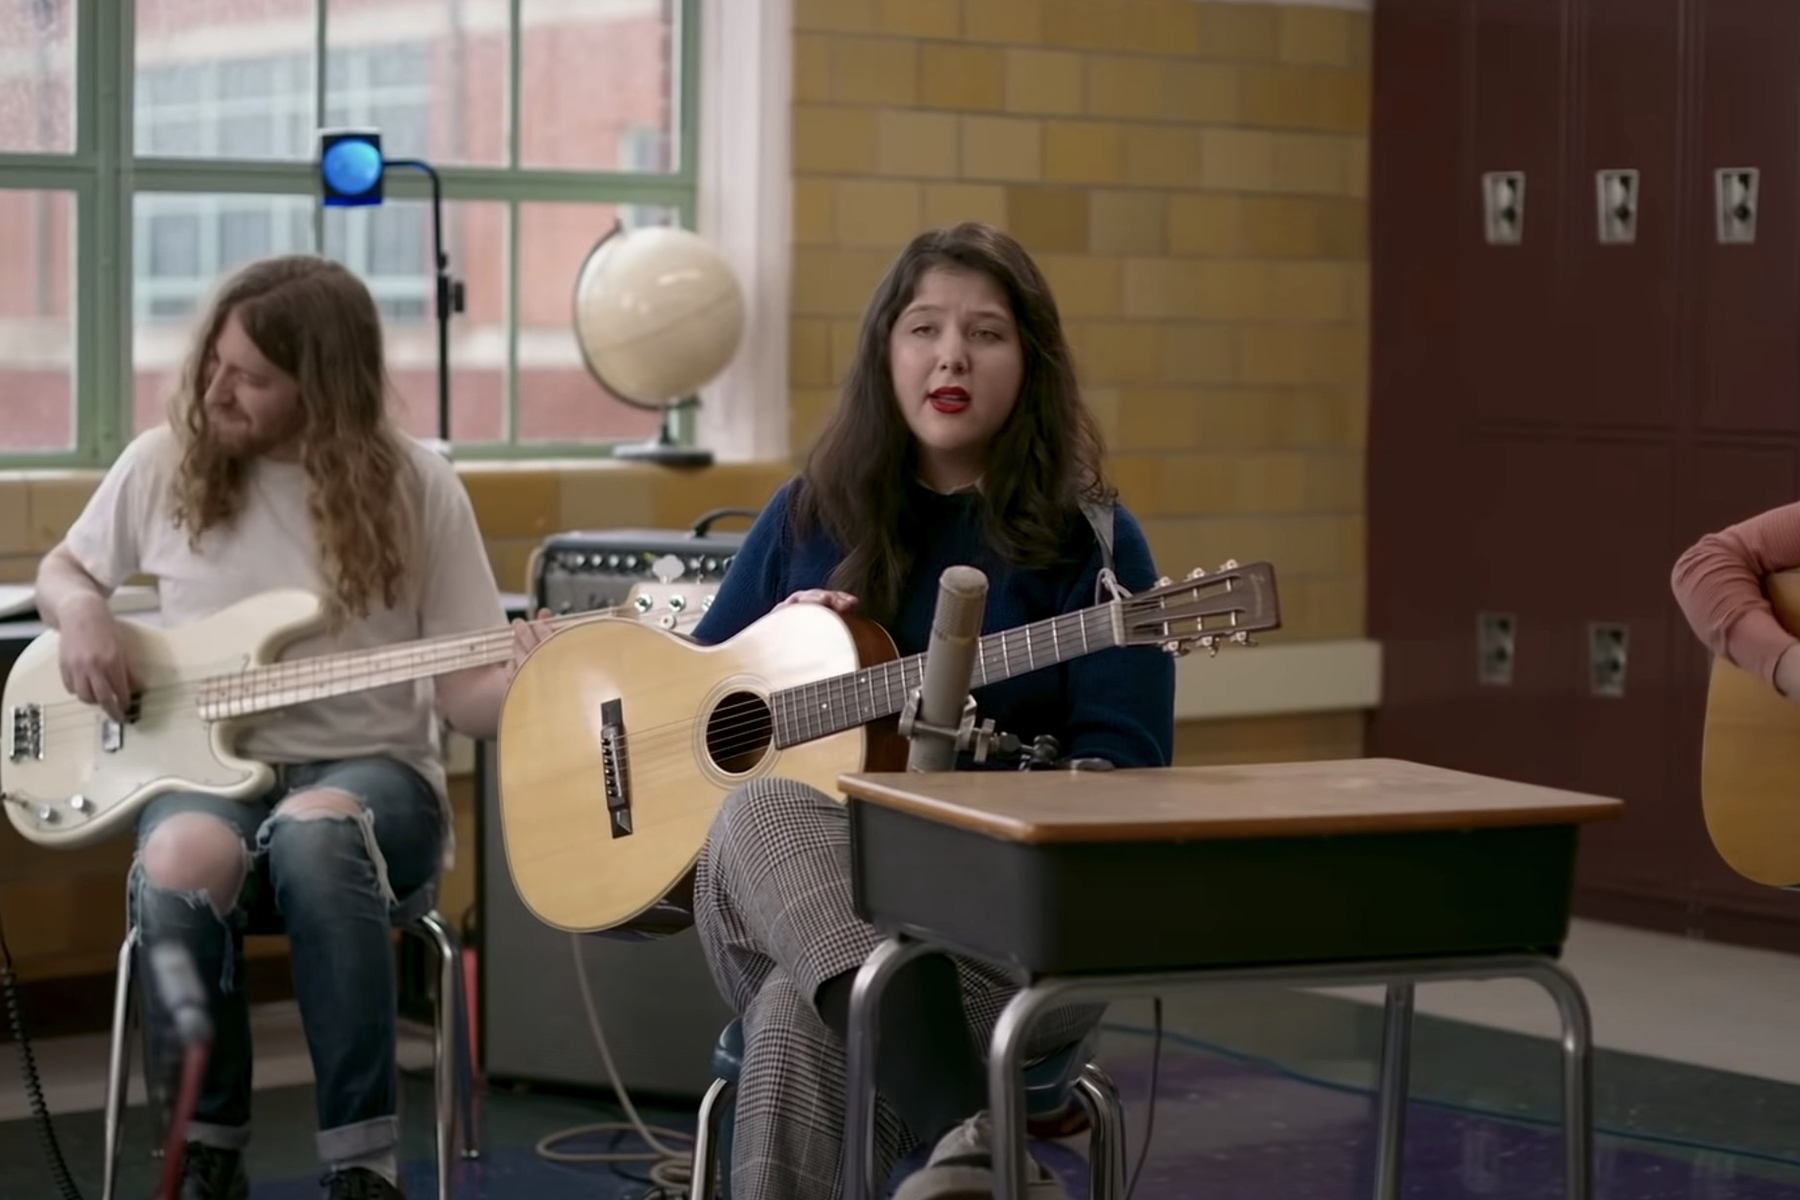 Lucy Dacus Returns to Her High School for NPR 'Tiny Desk Concert'